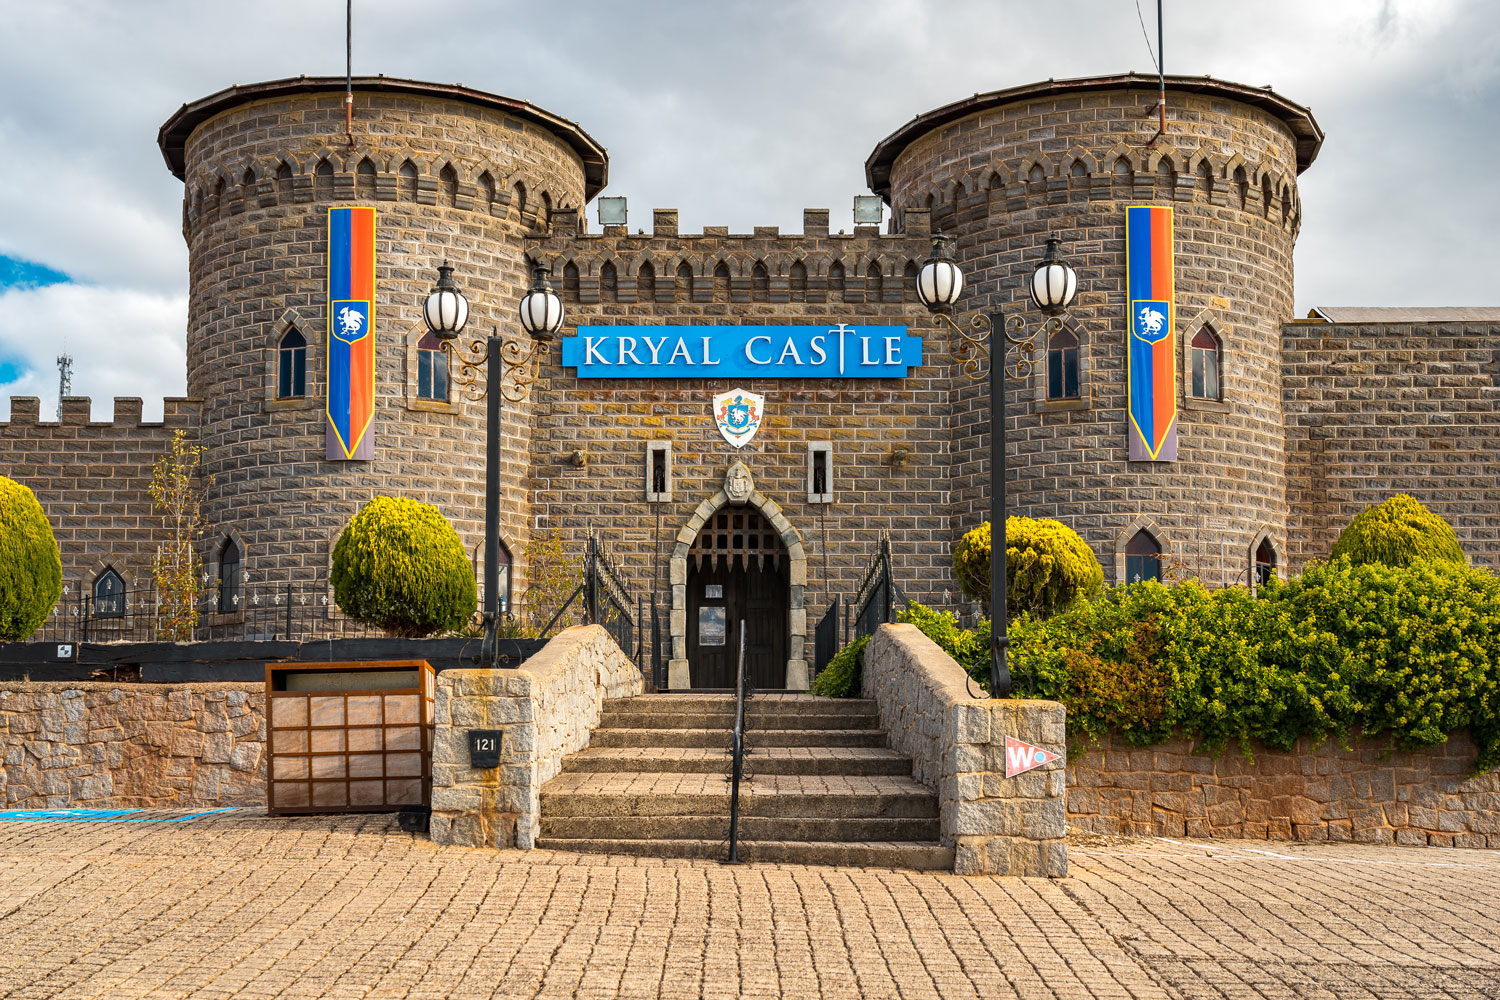 kryal castle